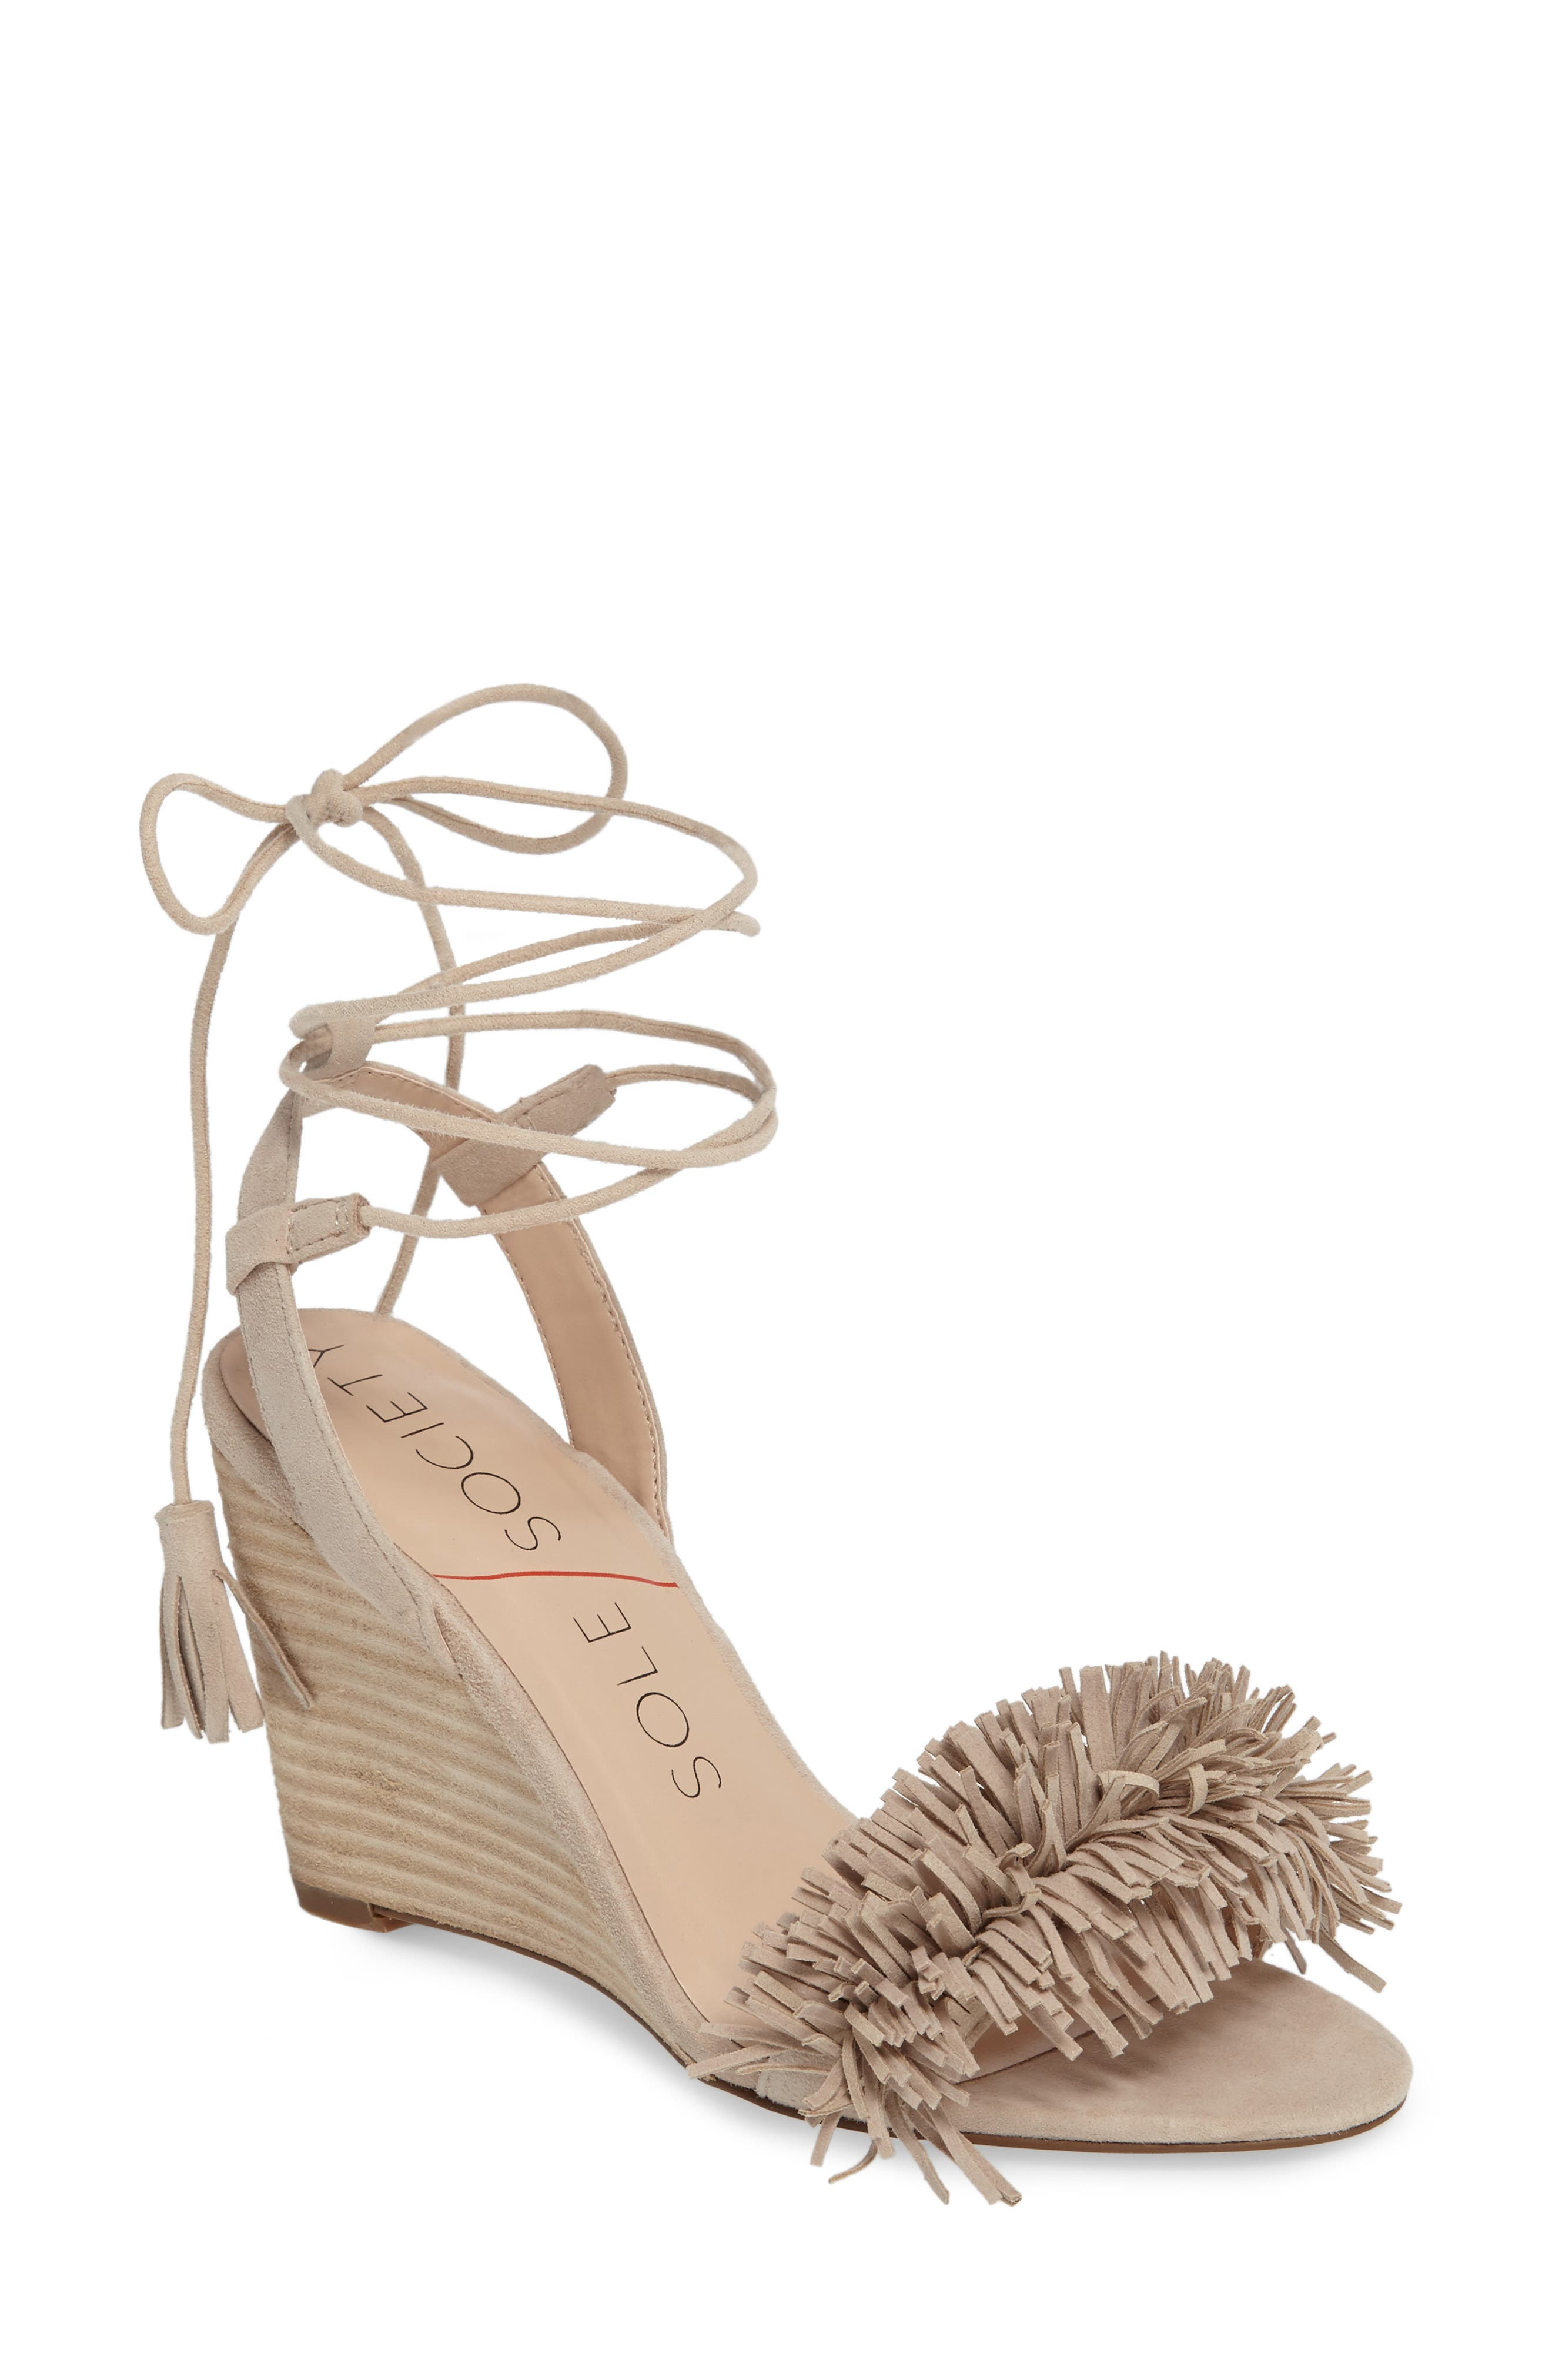 Rosea Ankle Wrap Sandal,                         Main,                         color, French Taupe Suede